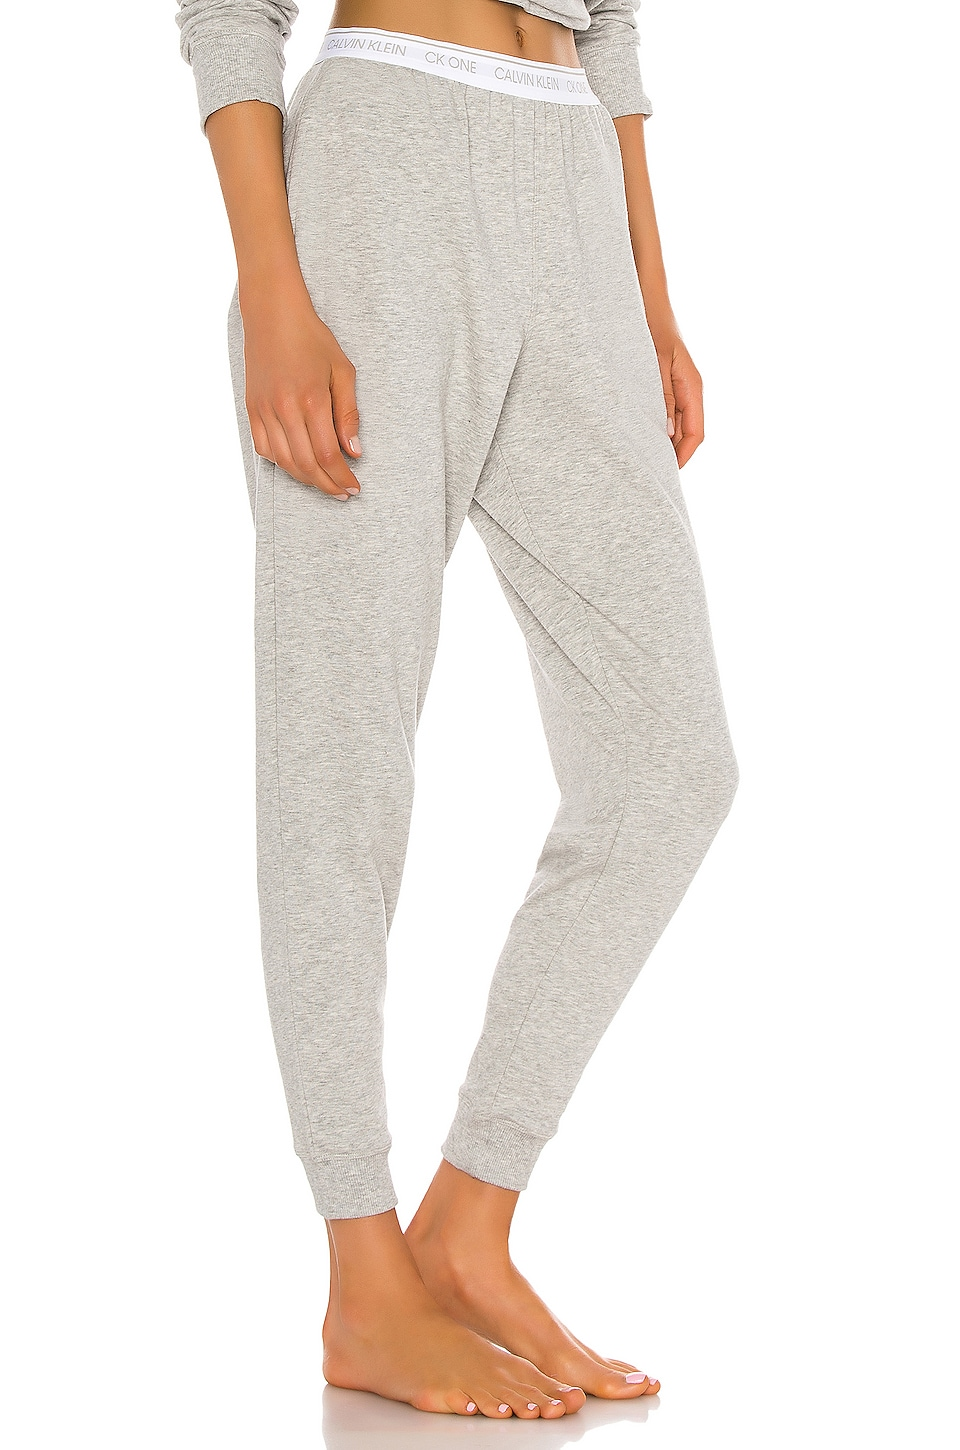 One Basic Lounge Sweatpant, view 2, click to view large image.